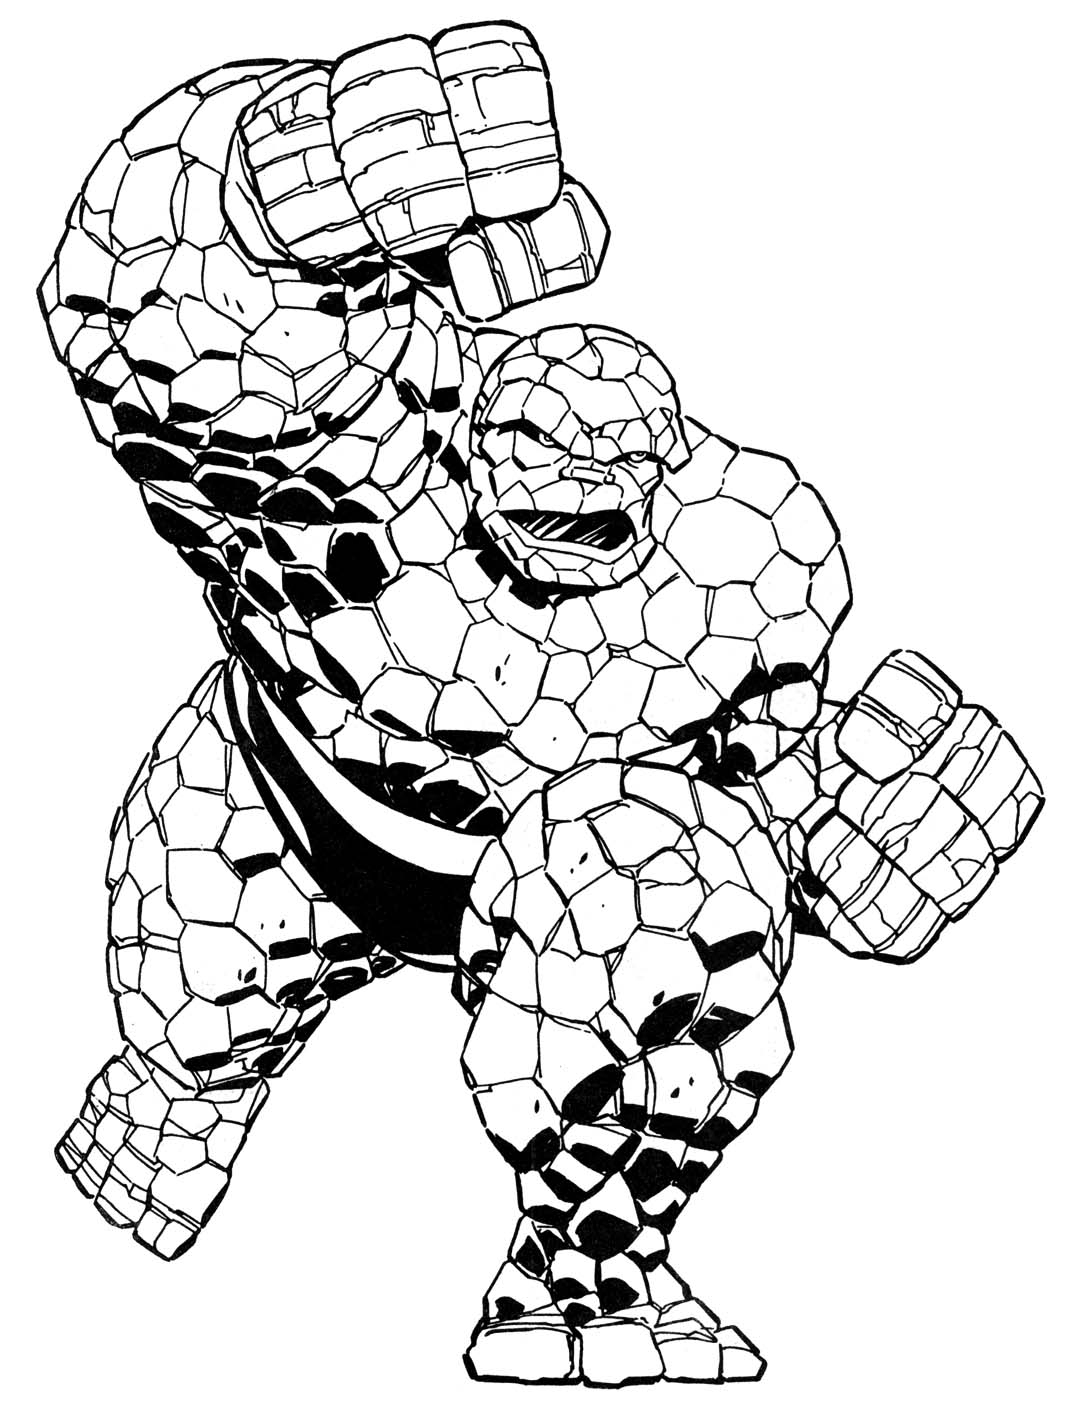 coloring pages for kids super heros coloring book marvel super heroes heros pages kids coloring super for